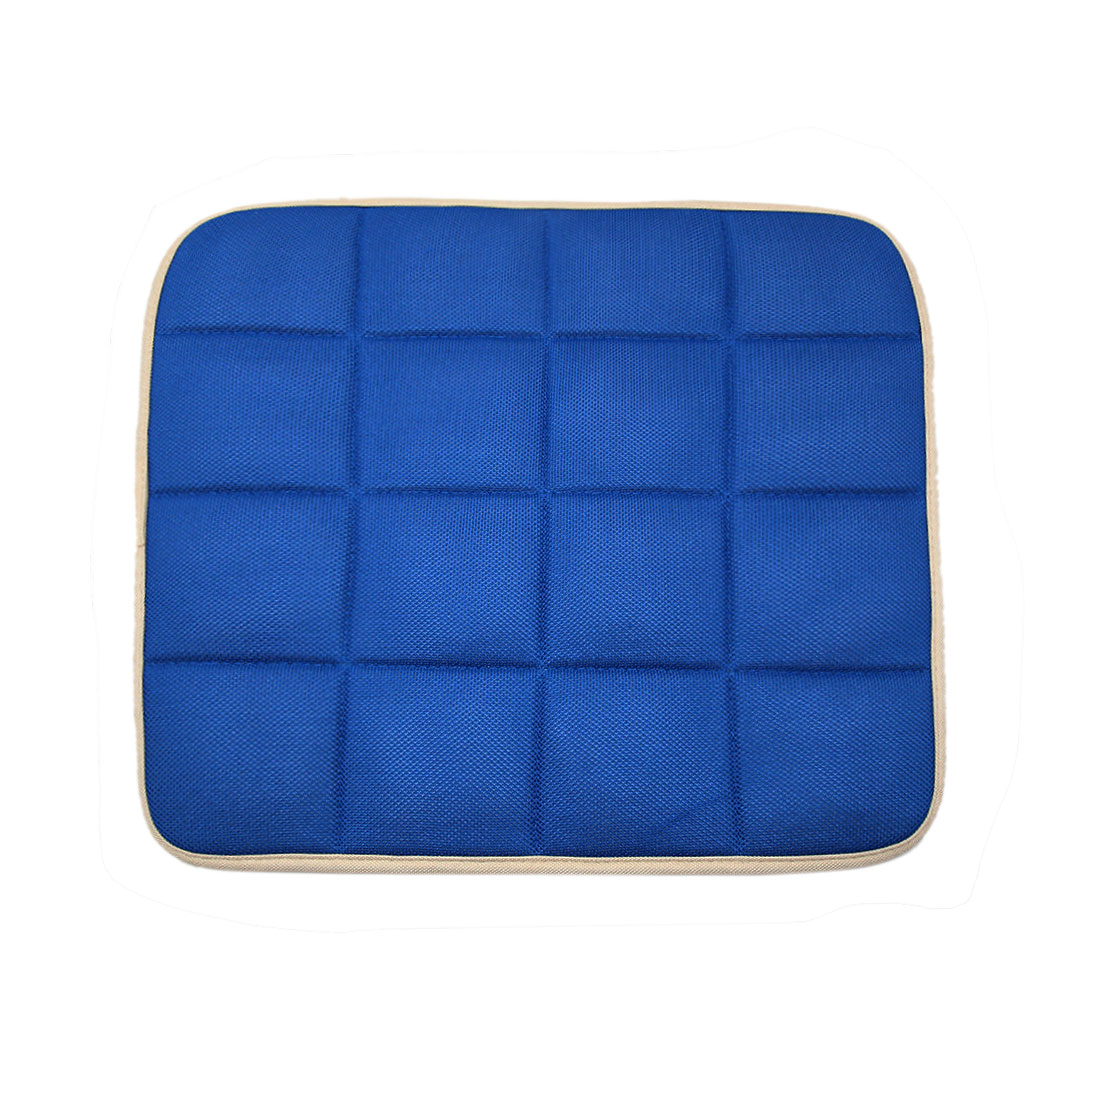 Blue Square Shaped Bamboo Charcoal Filled Car Auto Seat Cushion Mat Cover